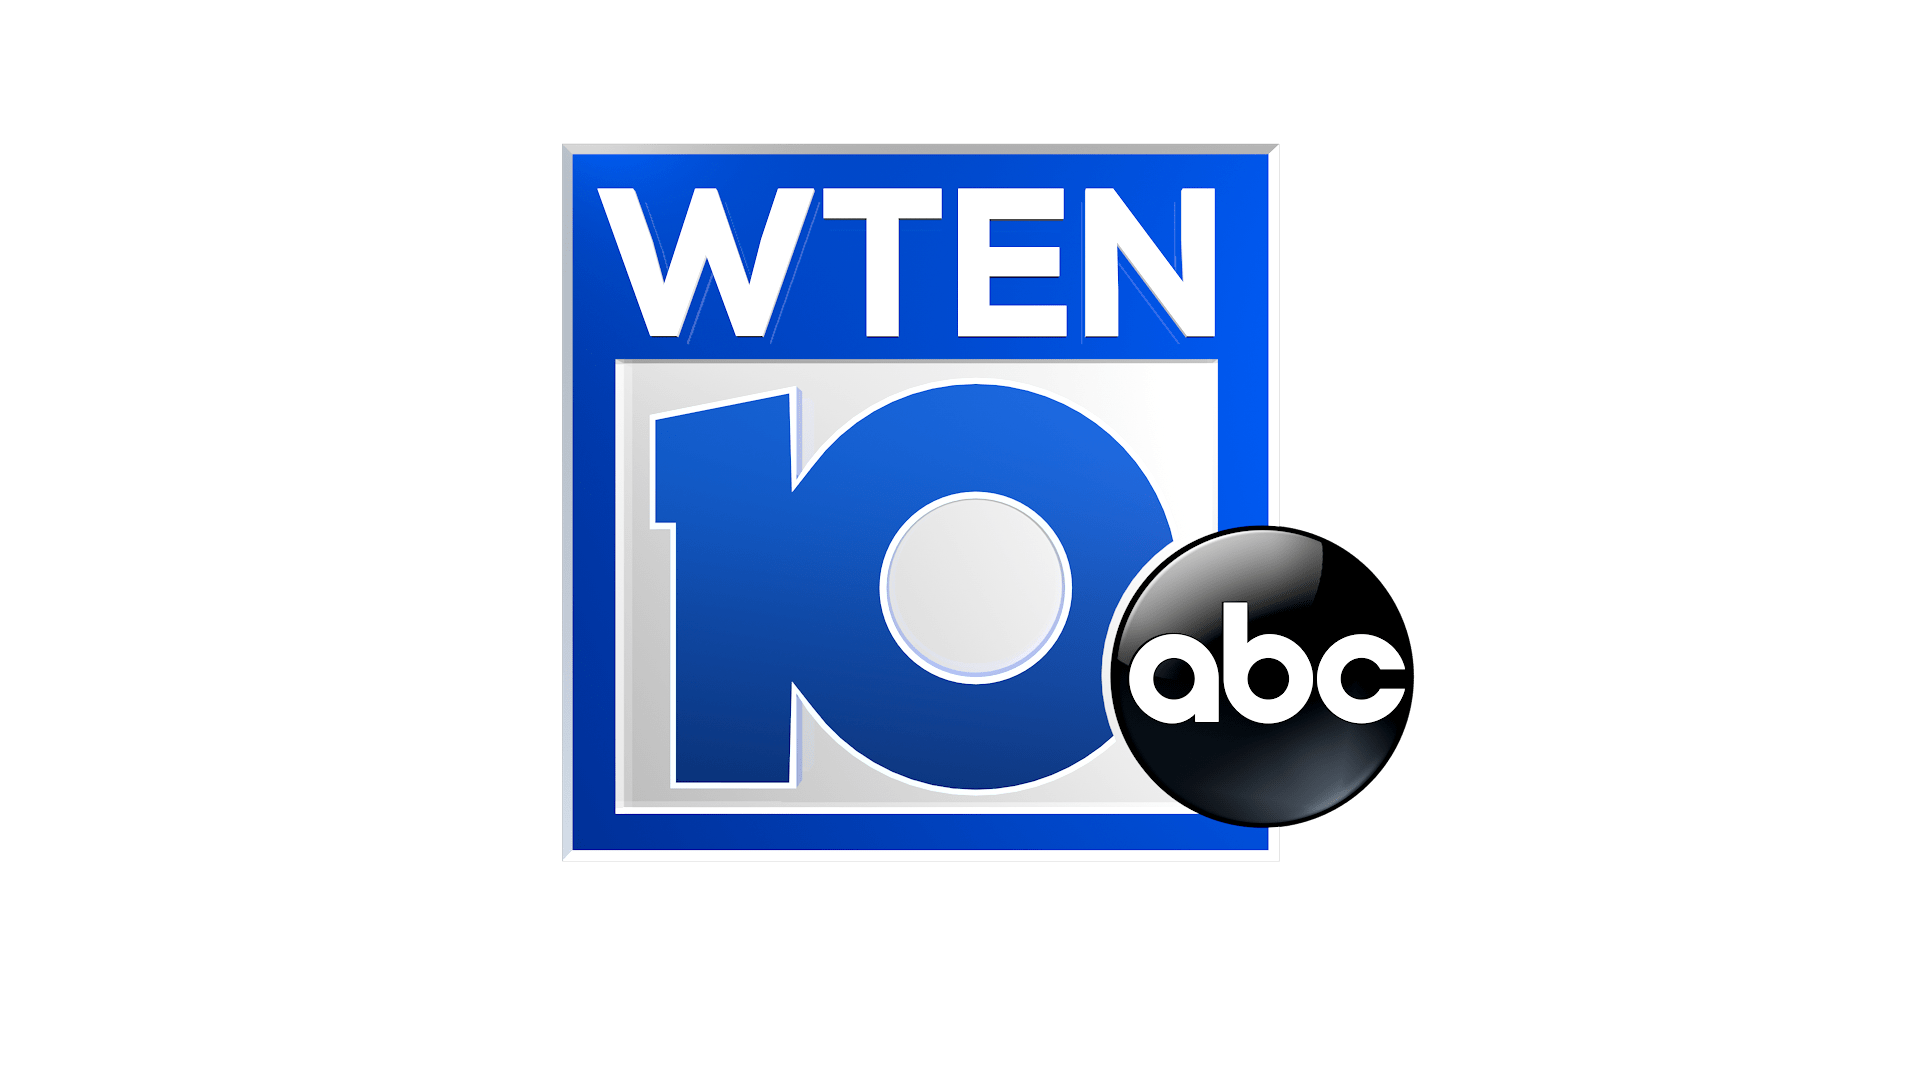 WTEN Channel 10 switched to new over-the-air signal